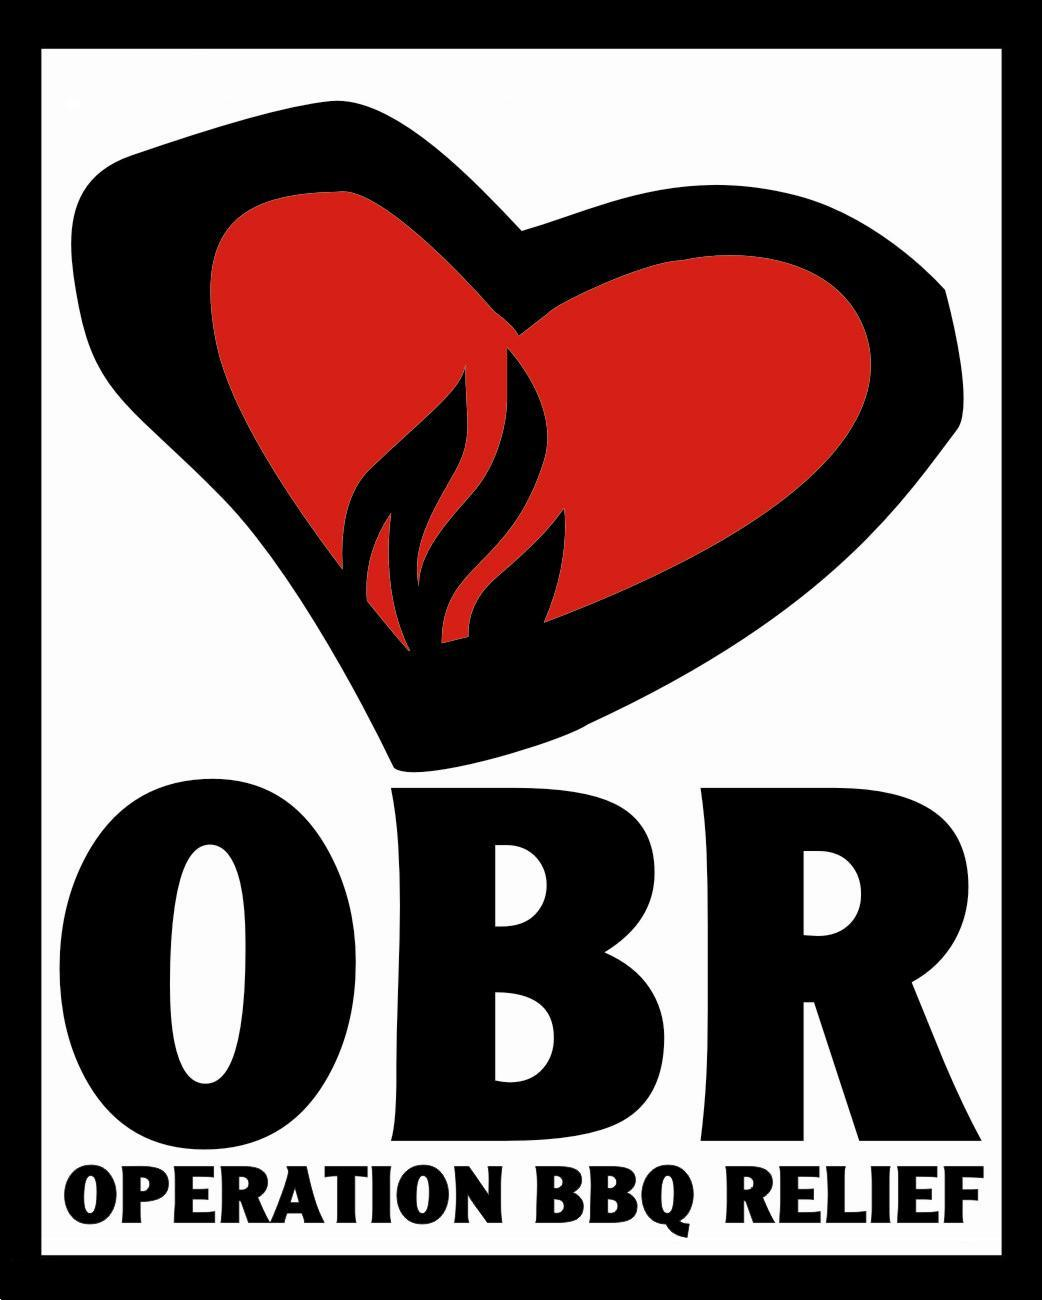 operation_BBQ_relief-6074a00204c44fa966ccd7fec86a6d5a1e683348